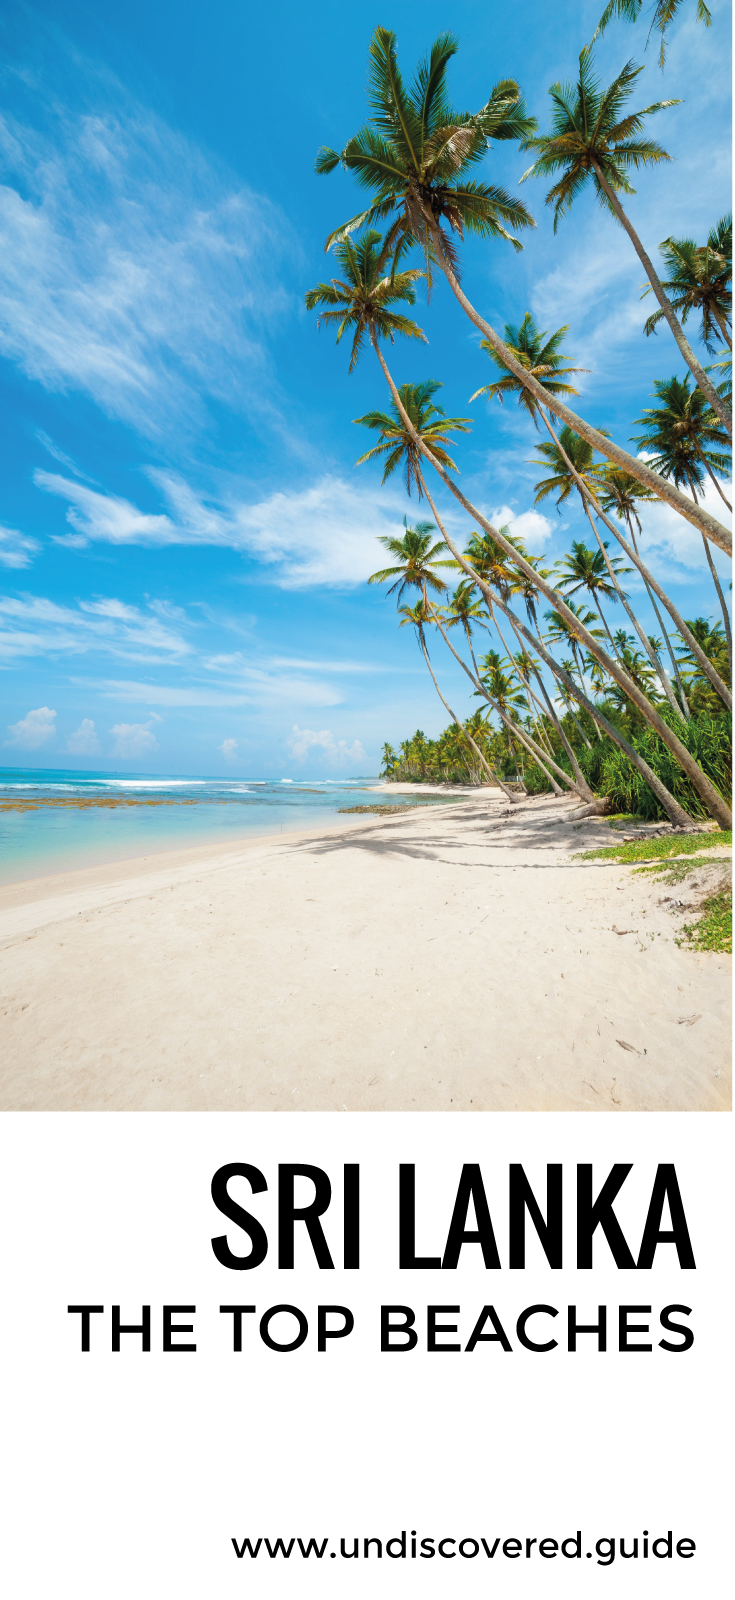 Sri Lanka is blessed with some beautiful sands - here's our guide to the top beaches http://www.undiscovered.guide/sri-lanka/beach-guide #SriLanka #Travel